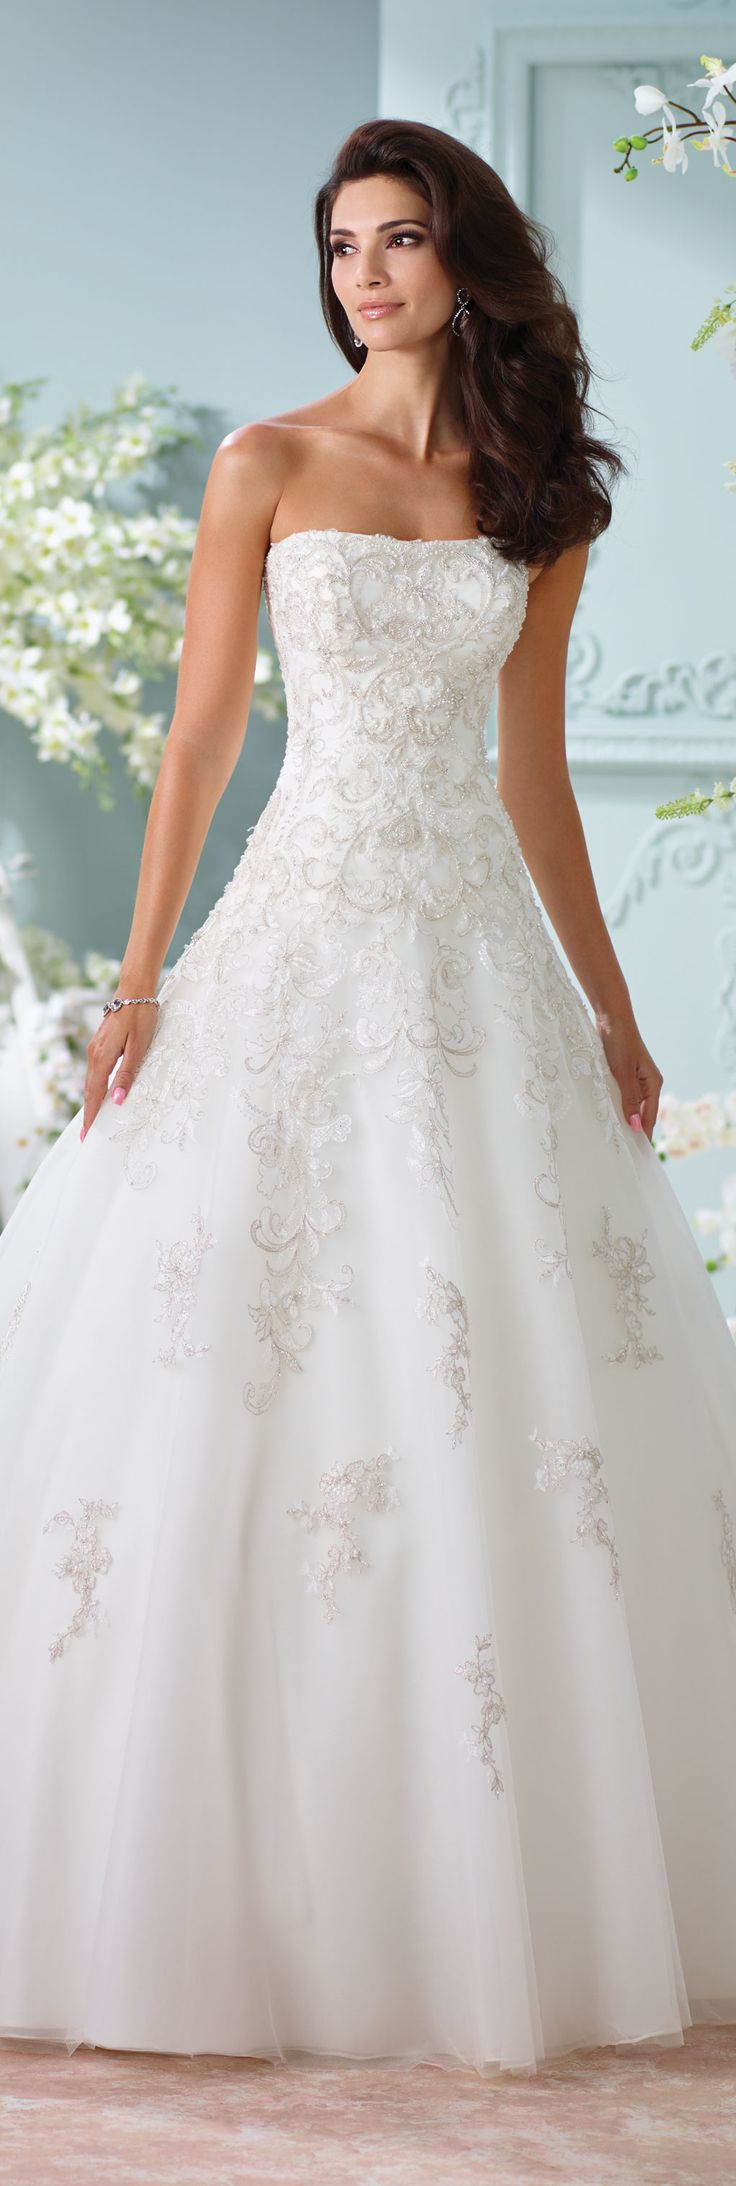 The David Tutera for Mon Cheri Spring 2016 Wedding Gown Collection - Style No. 116216